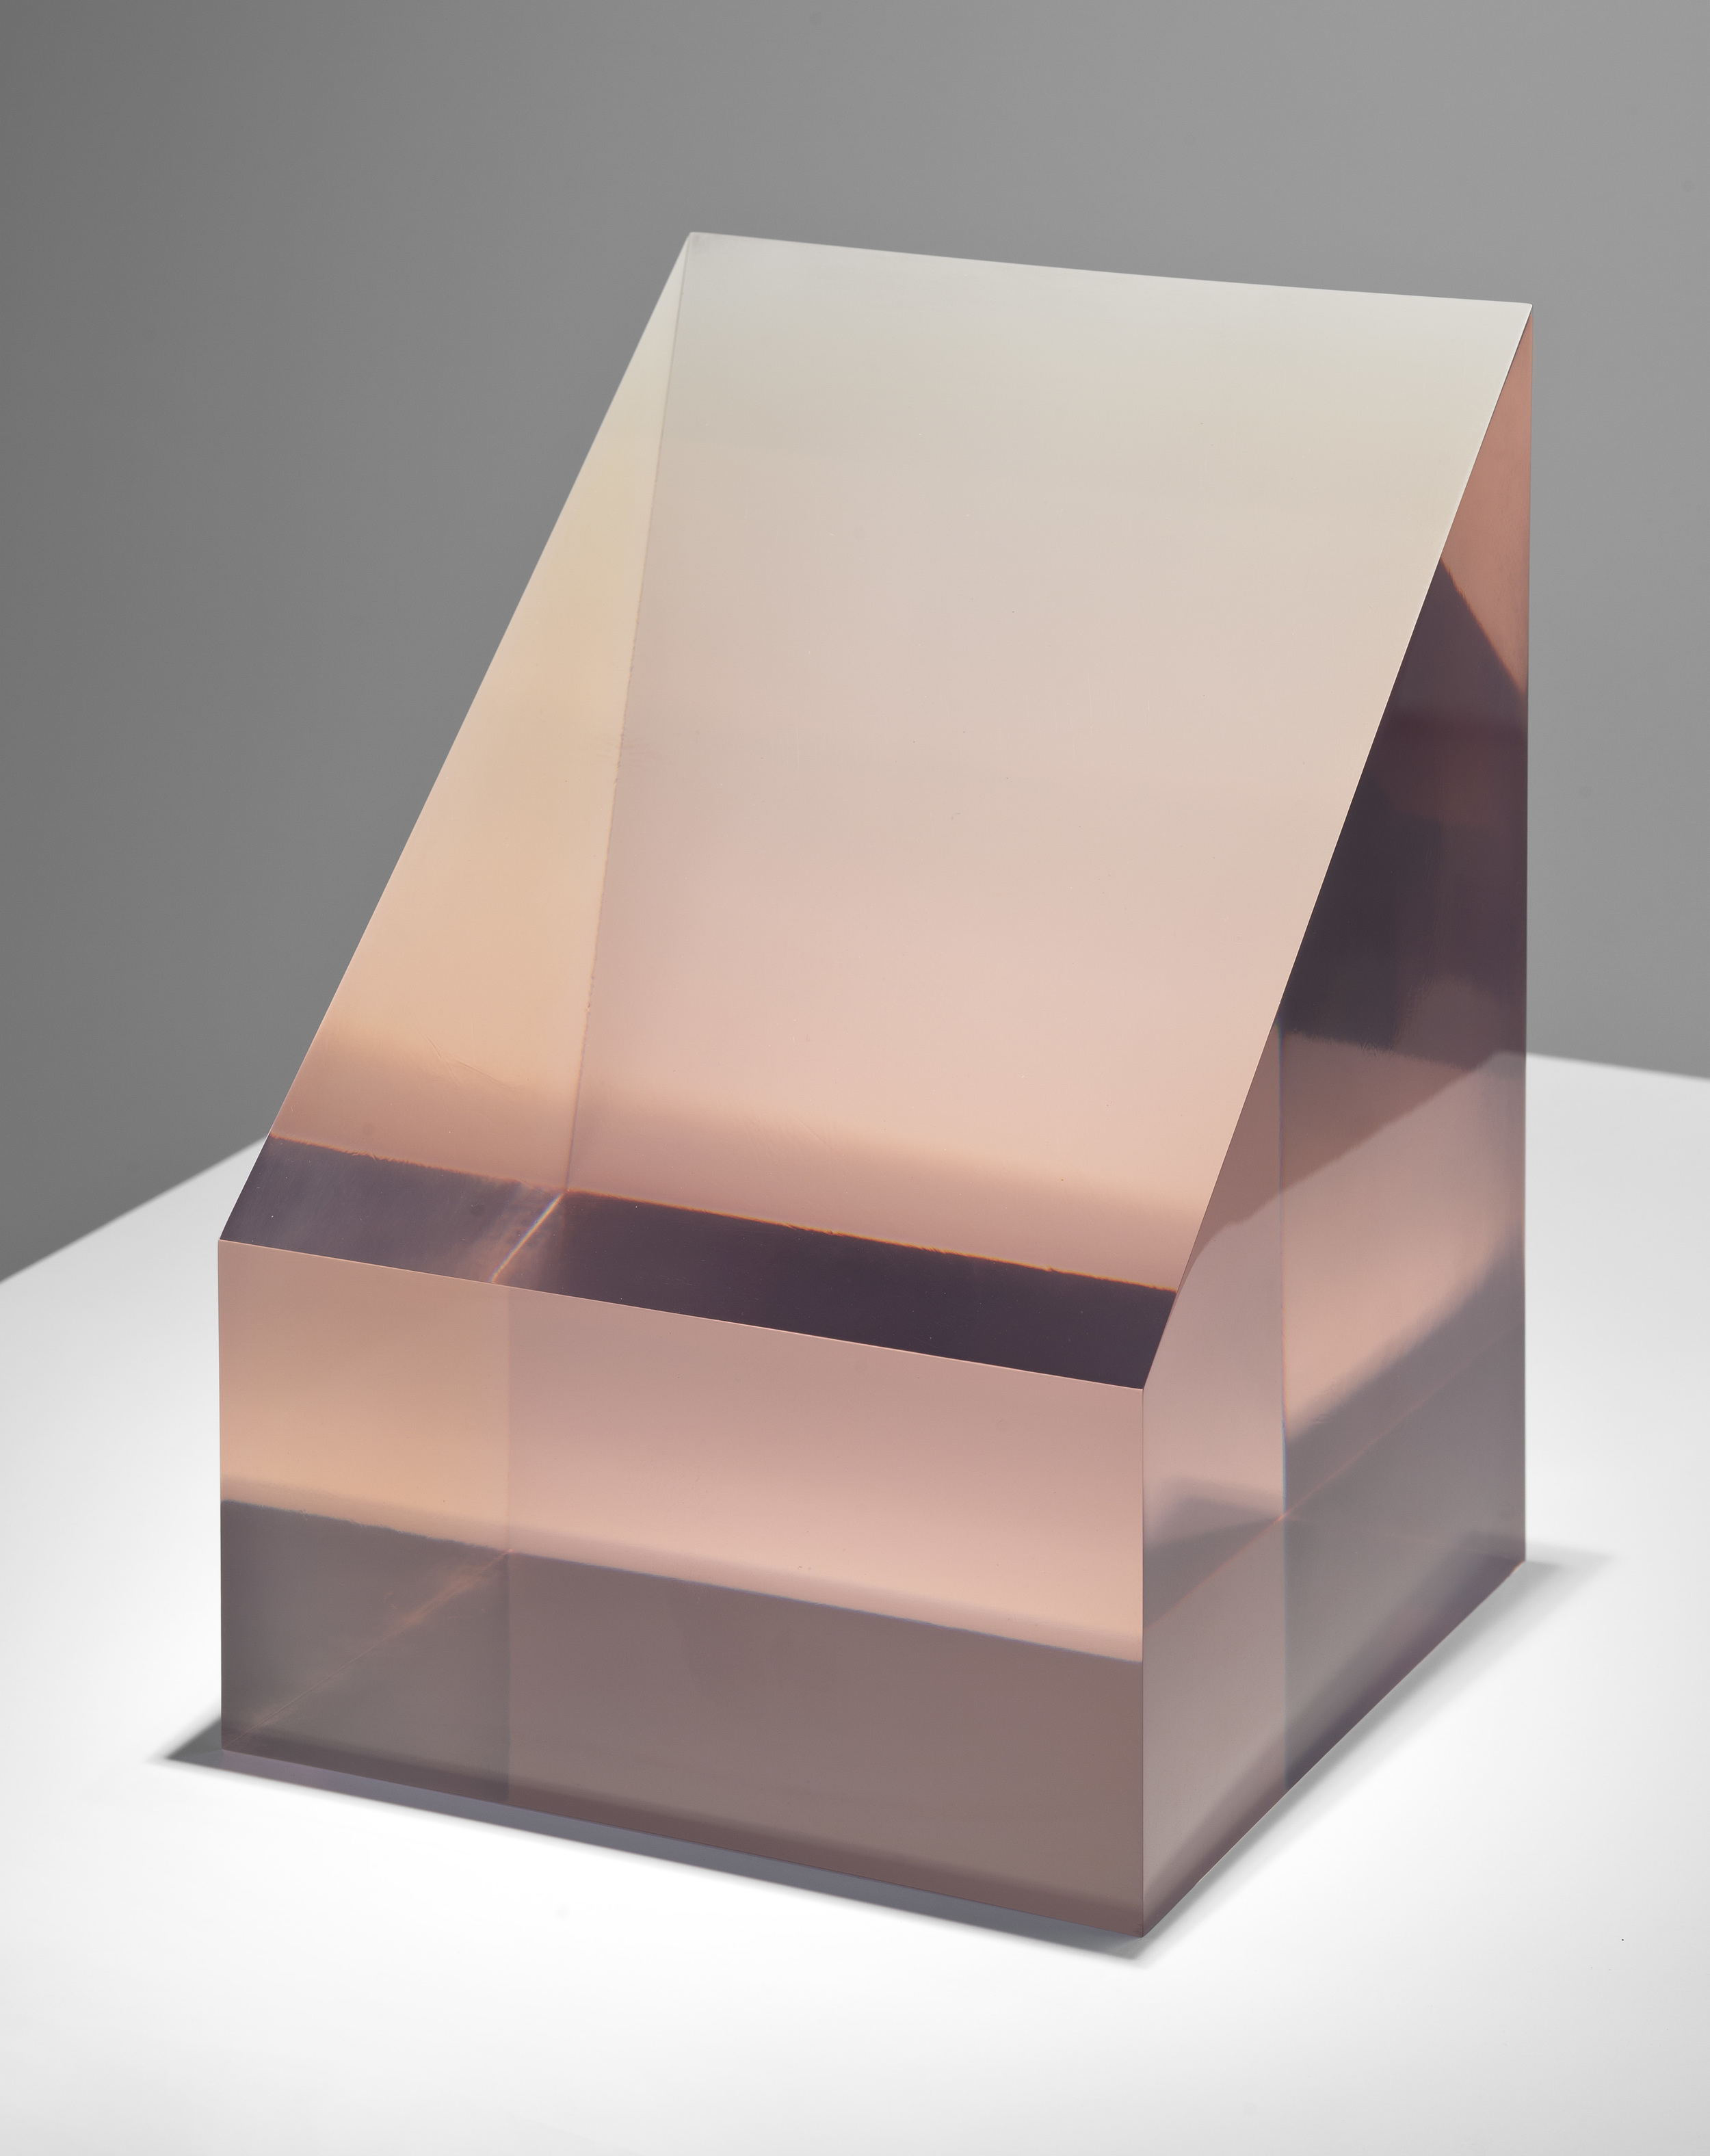 Peter Alexander Pink Box, 1967 polyester resin 12 x 8-3/4 x 8-2/4 inches Image courtesy of Parrasch Heijnen Gallery